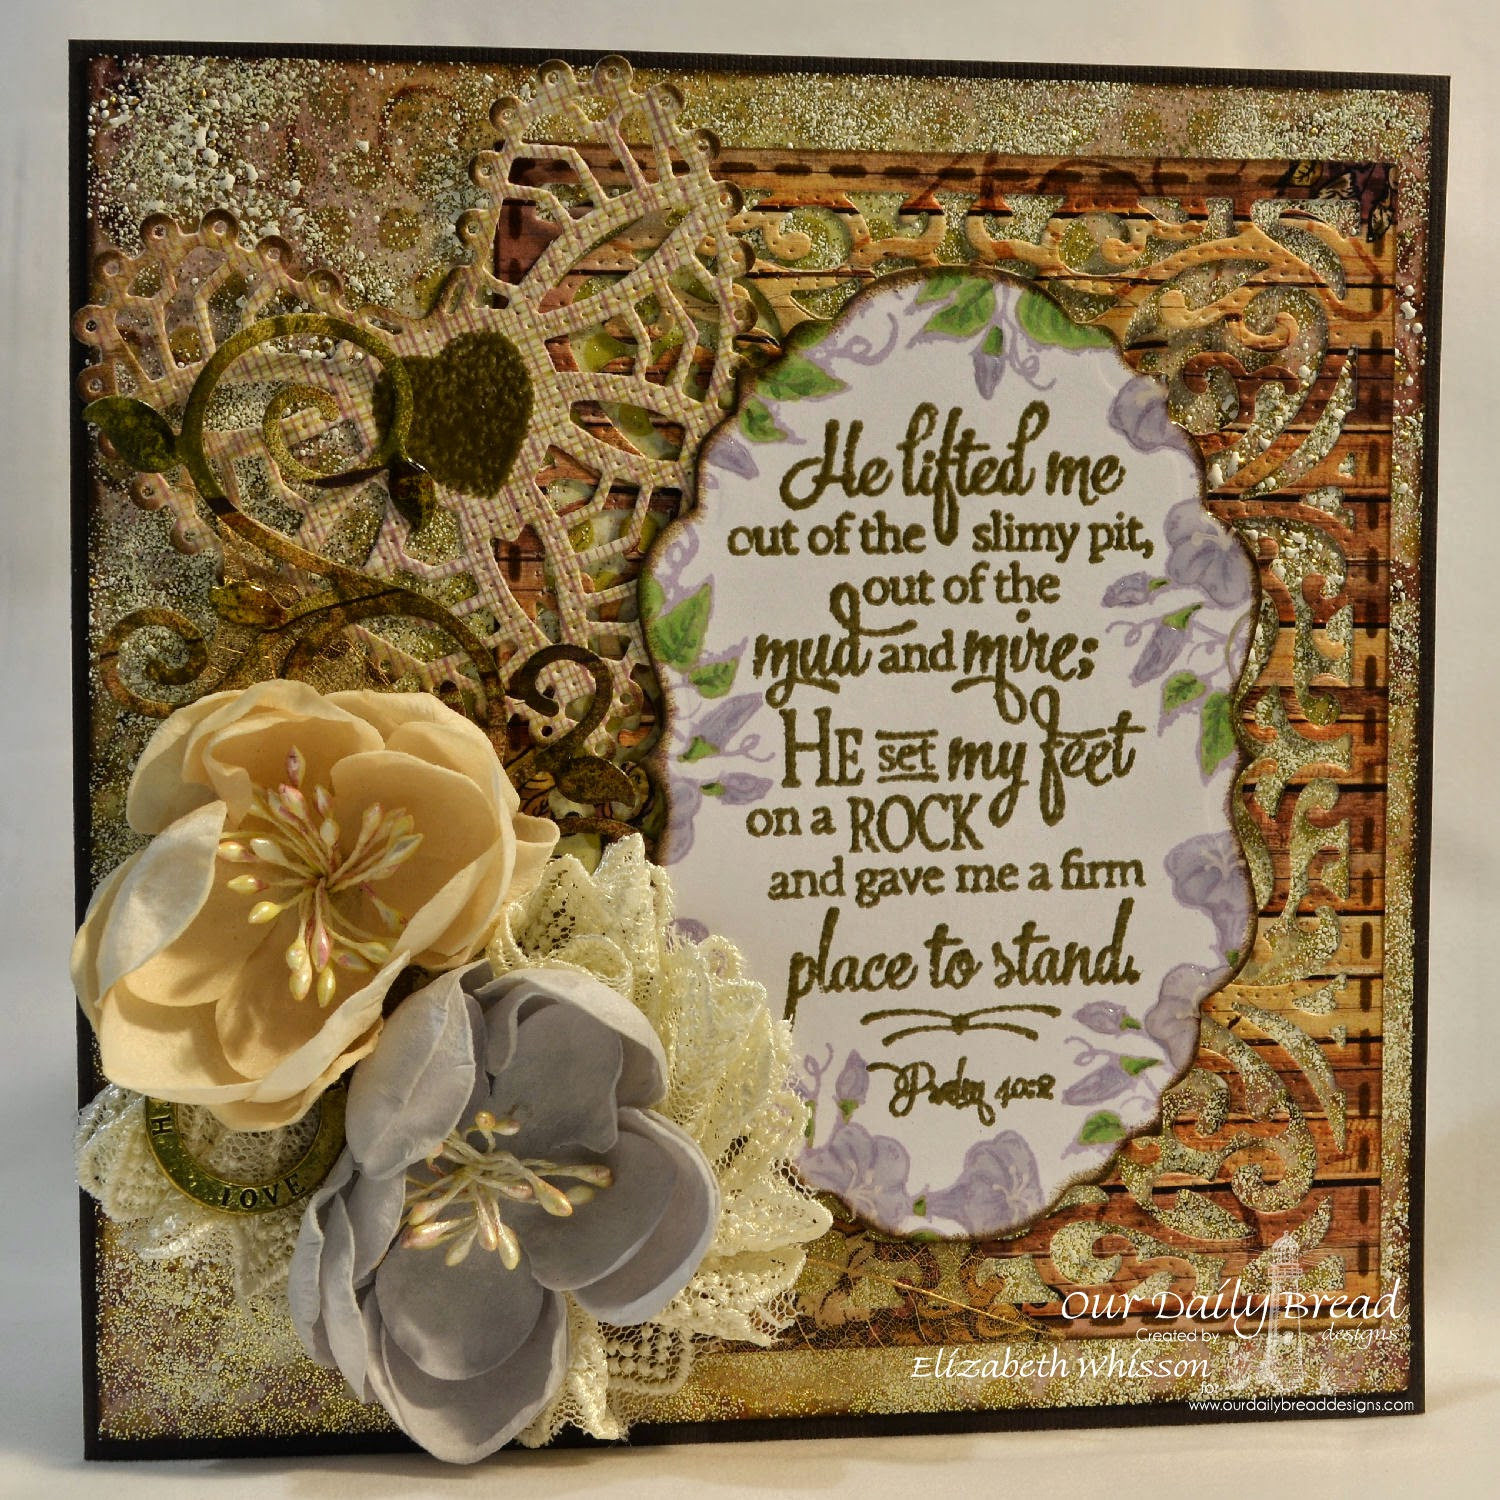 Stamps - Our Daily Bread Designs Glory, Scripture Collection 12, ODBD Custom Vintage Labels Die, ODBD Custom Vintage Flourish Pattern Die, ODBD Custom Ornate Hearts Die, ODBD Custom Fancy Foliage Die, ODBD Rustic Beauty Paper Collection